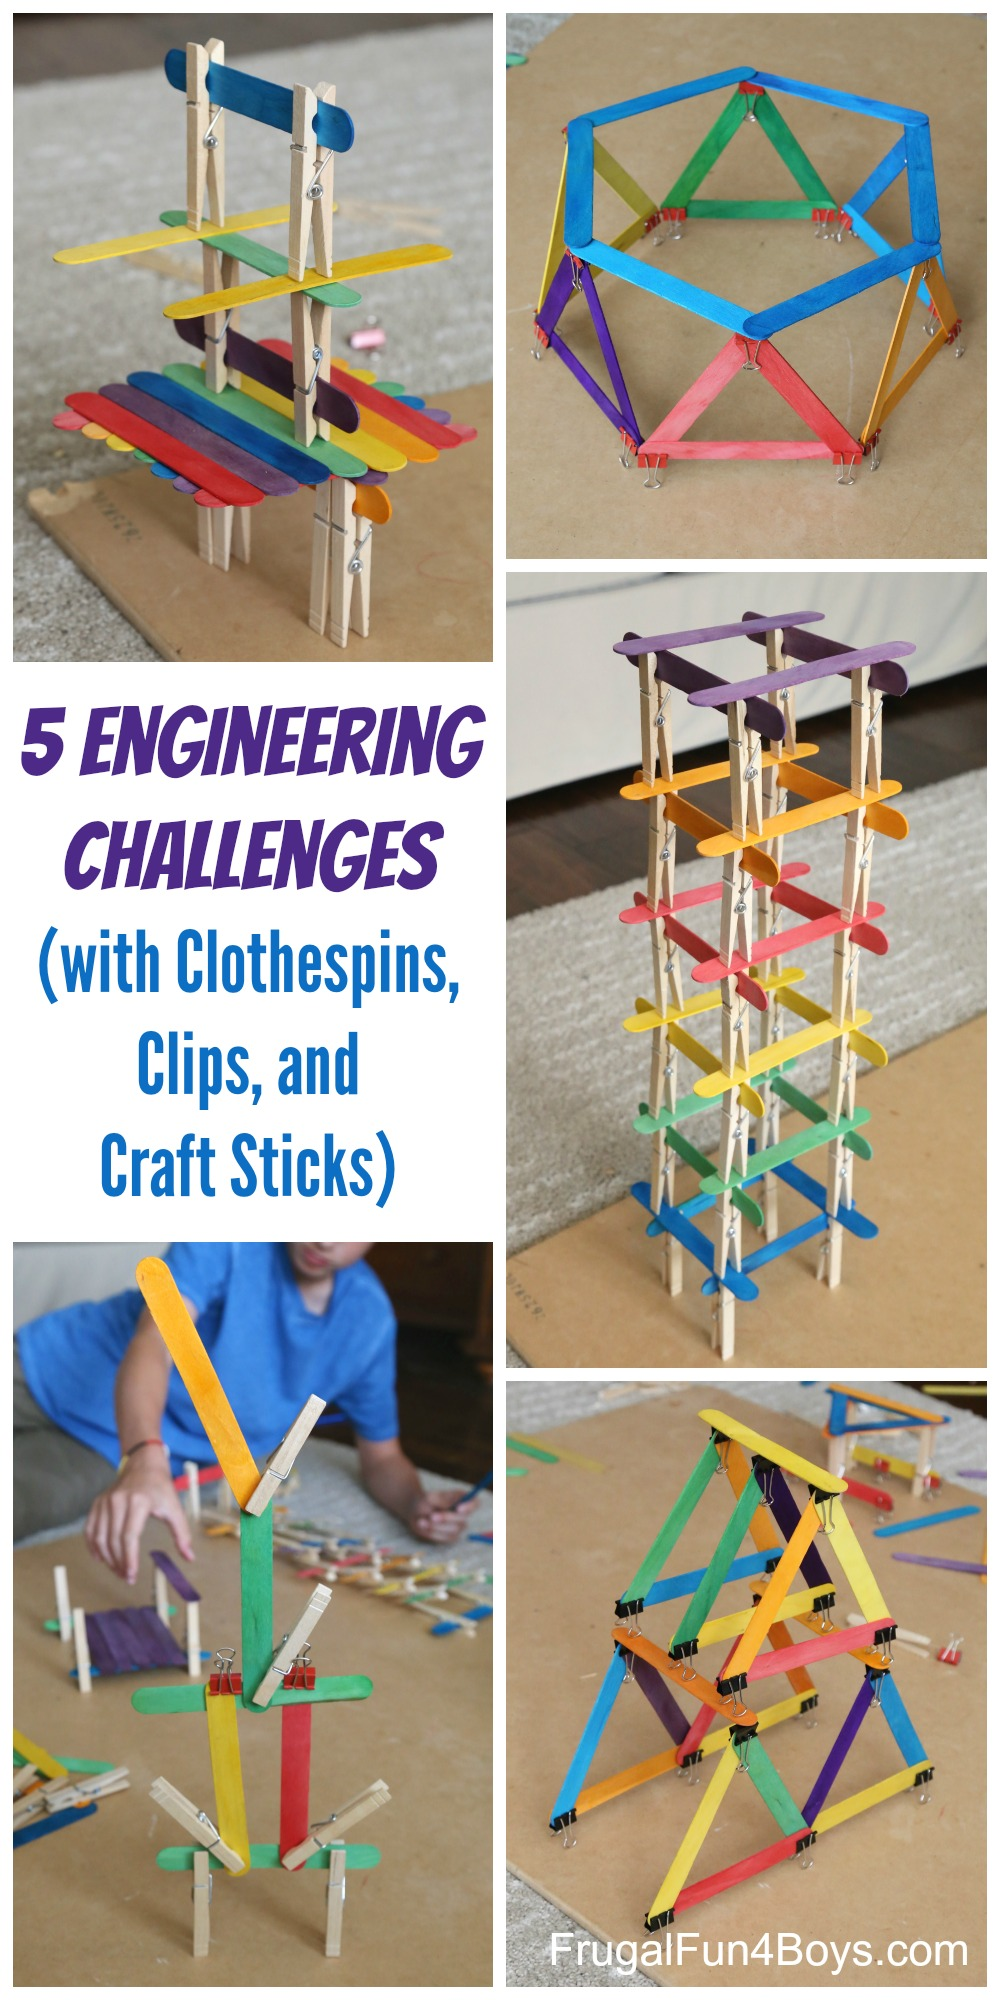 5 Engineering Challenges with Clothespins, Binder Clips, and Craft Sticks